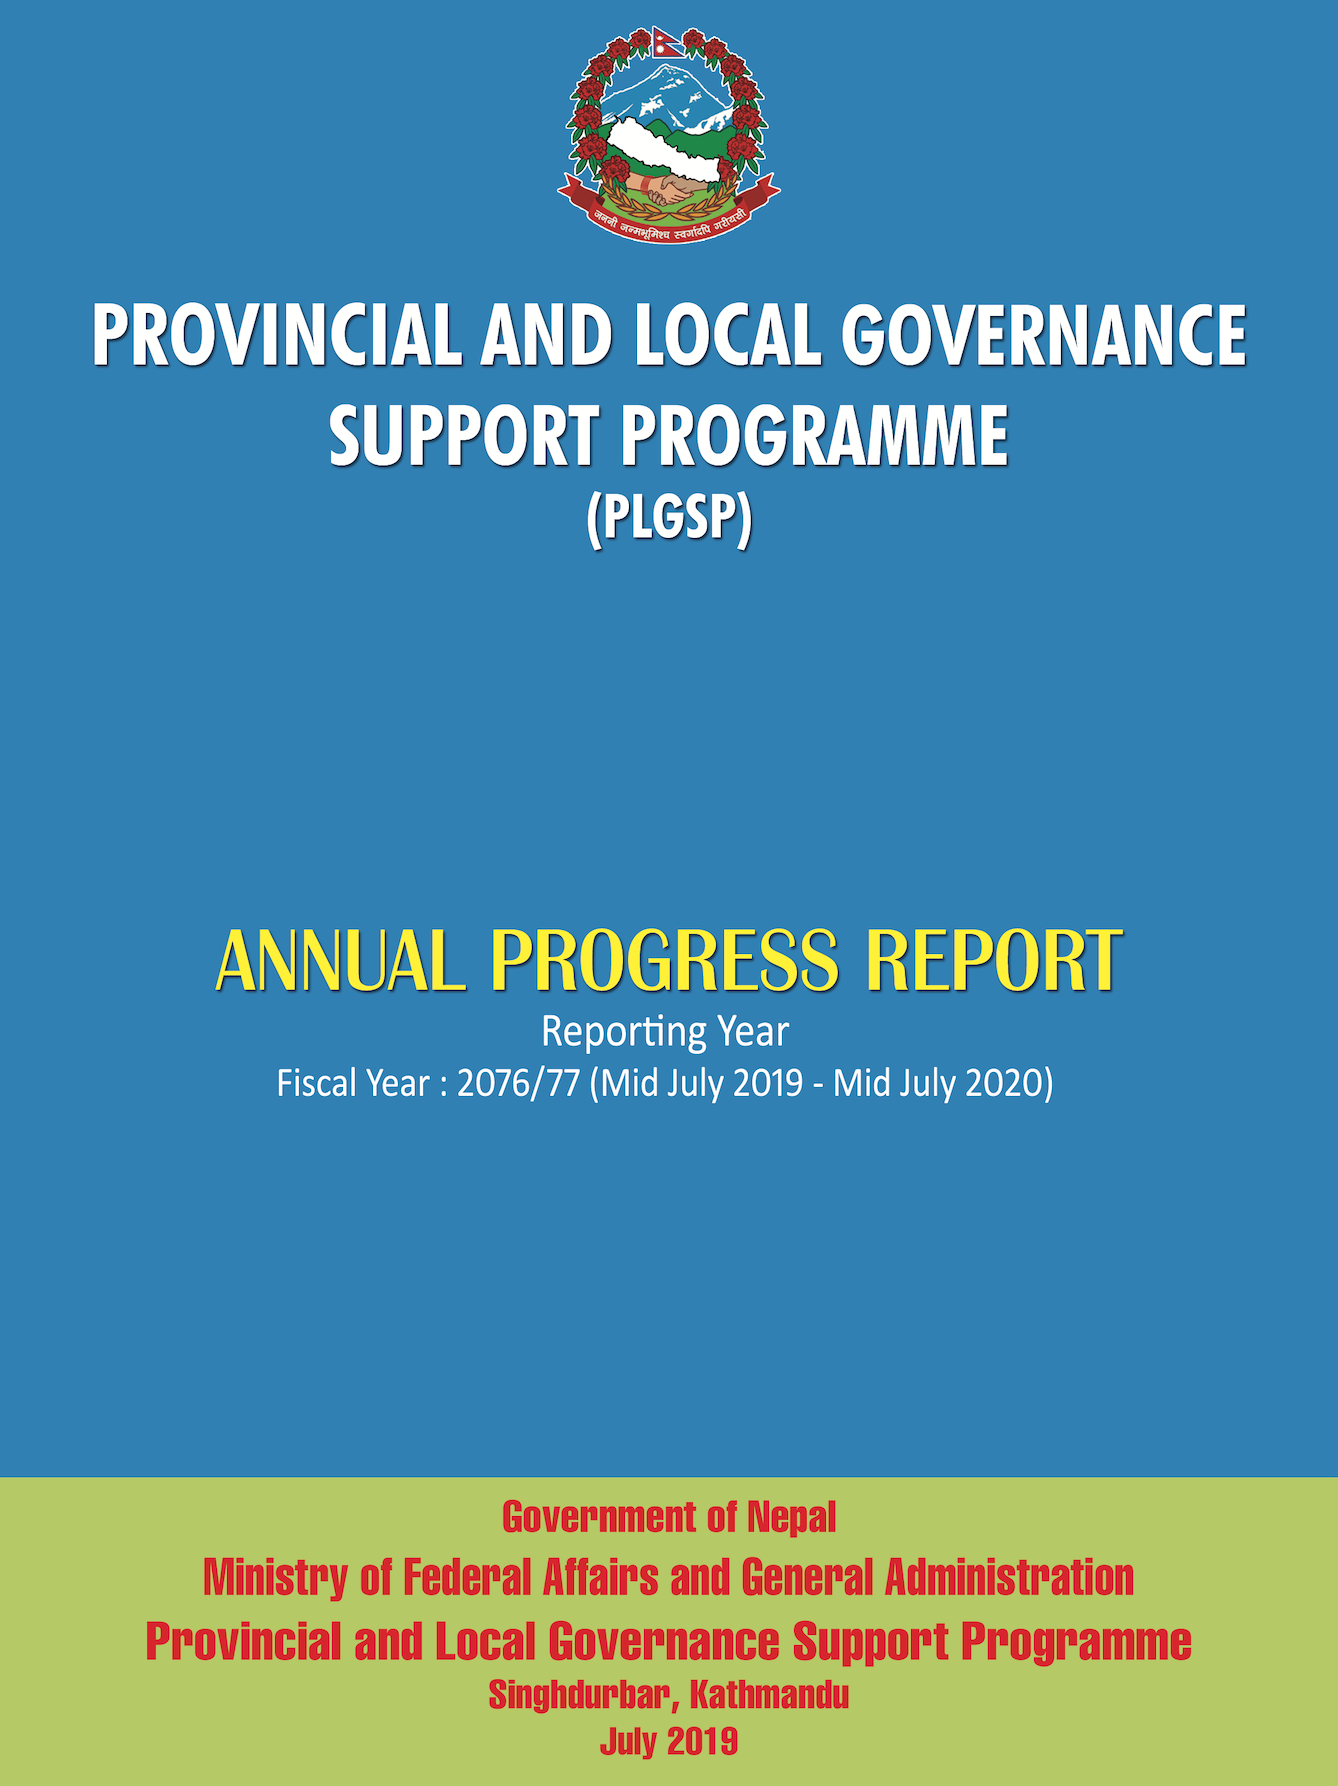 Cover page of Annual Progress Report- Fiscal Year 76/77